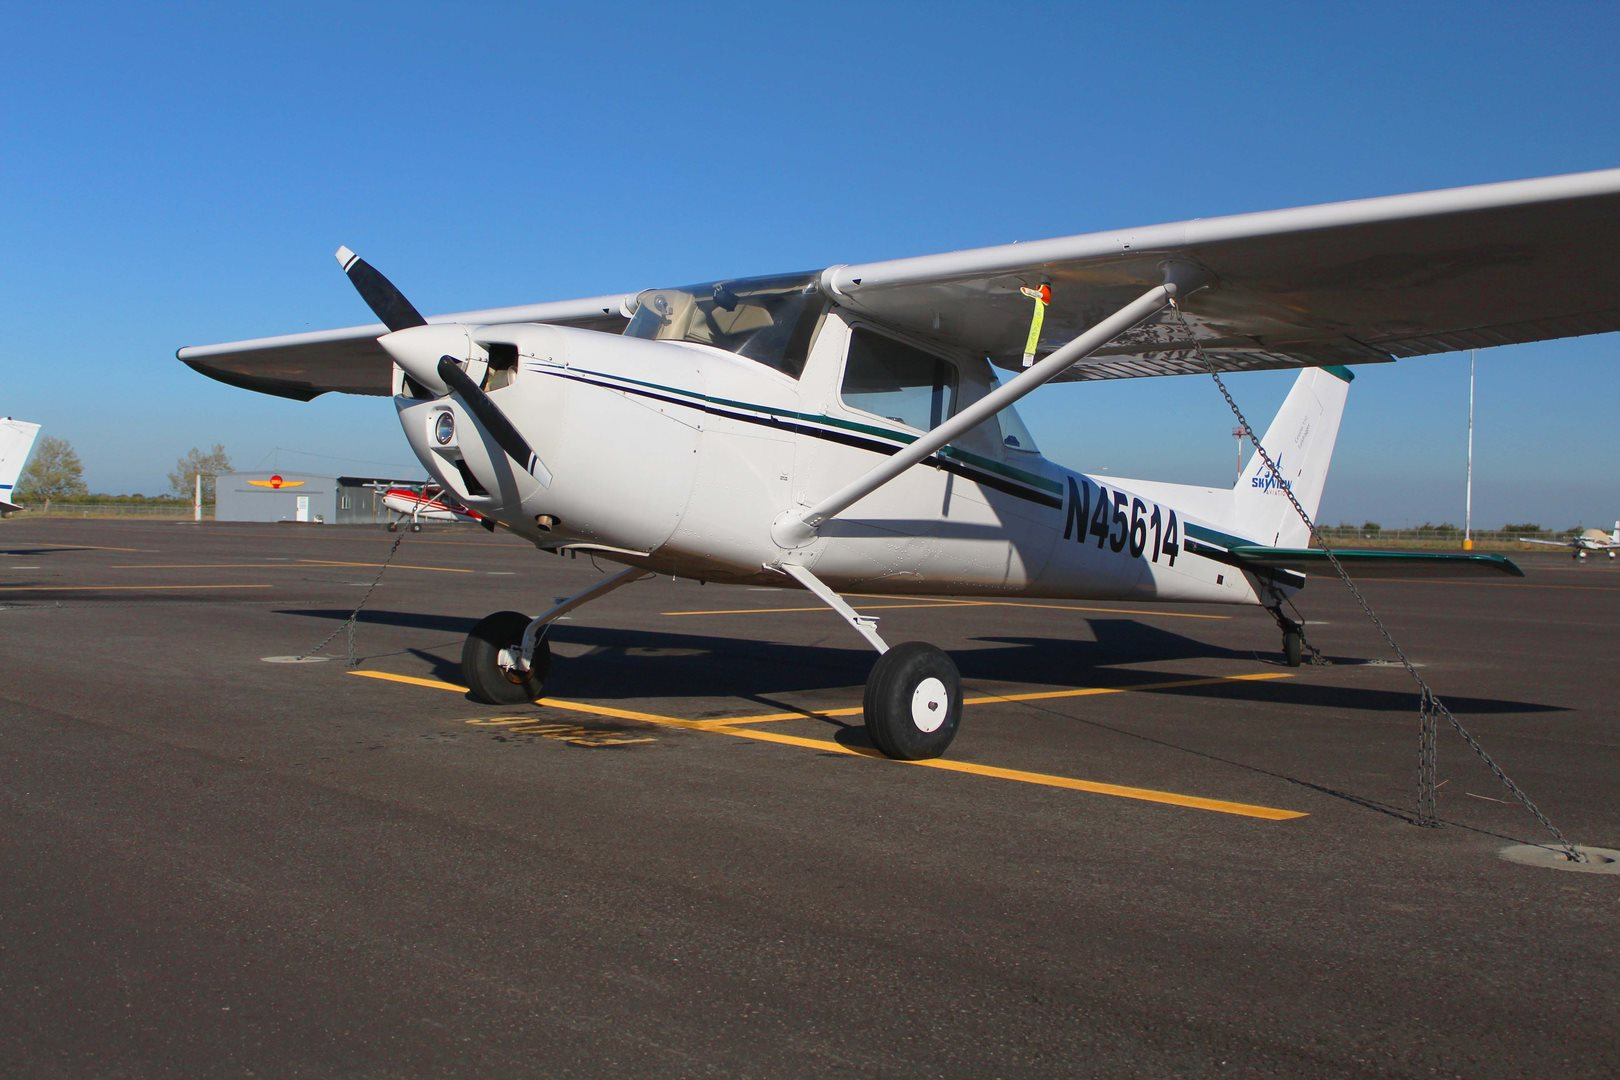 1975 Cessna 150 Tail Dragger